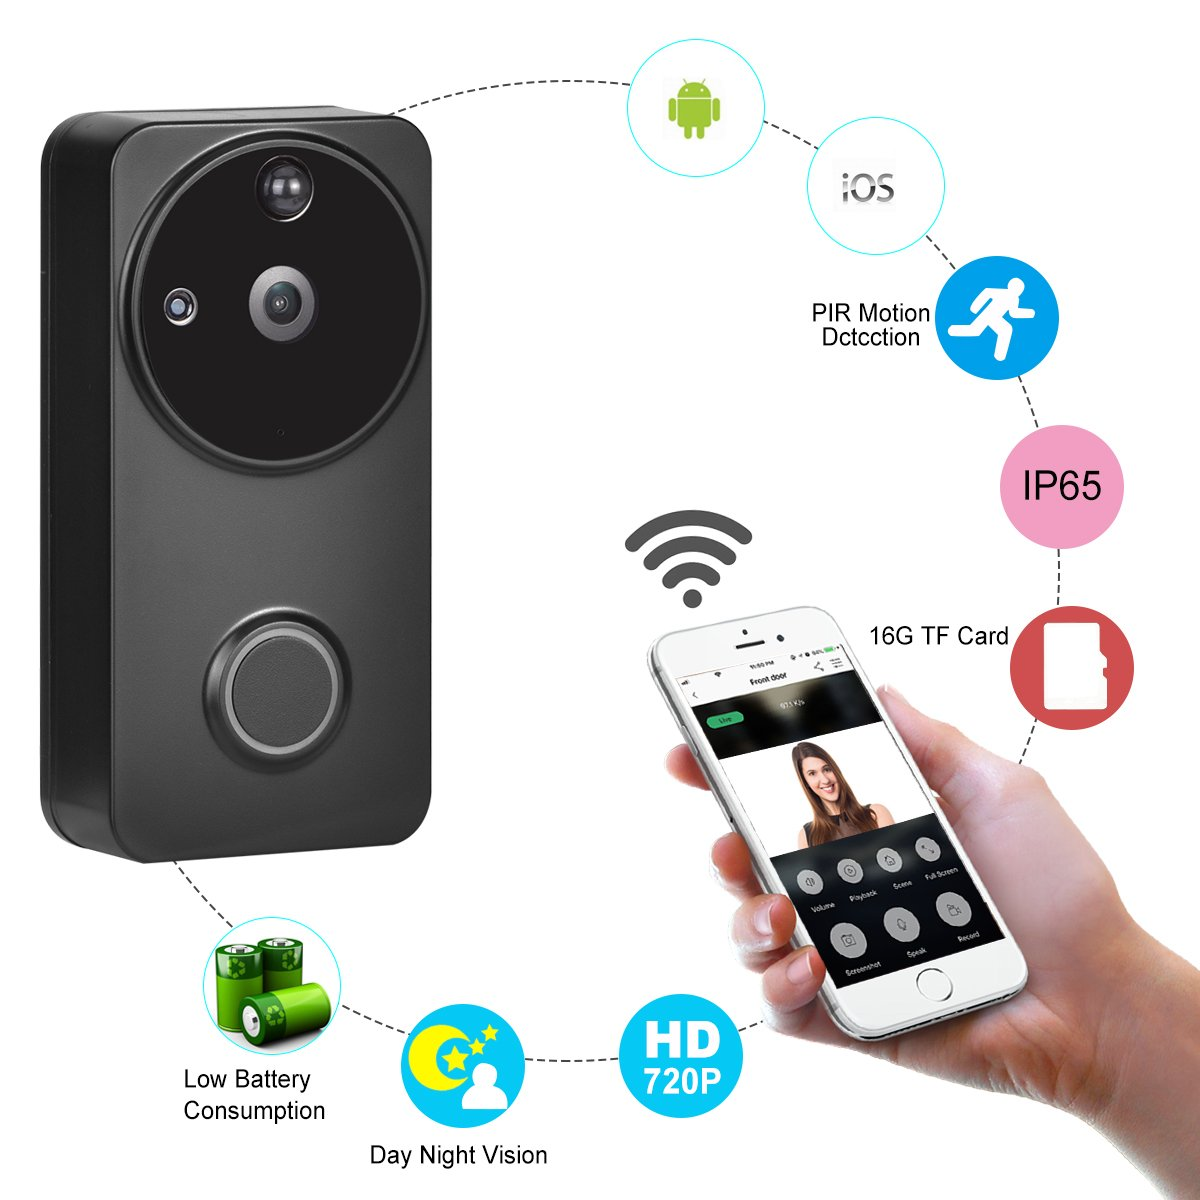 Akpote Video Doorbell,Smart WIFI Camera 720P HD 166ﹾ Lens with 6 LED Night Vision Wireless Visual Doorbell IP65 Real-Time Two-way Audio PIR Motion Detection for IOS and Android with 16G TF Card(Black)